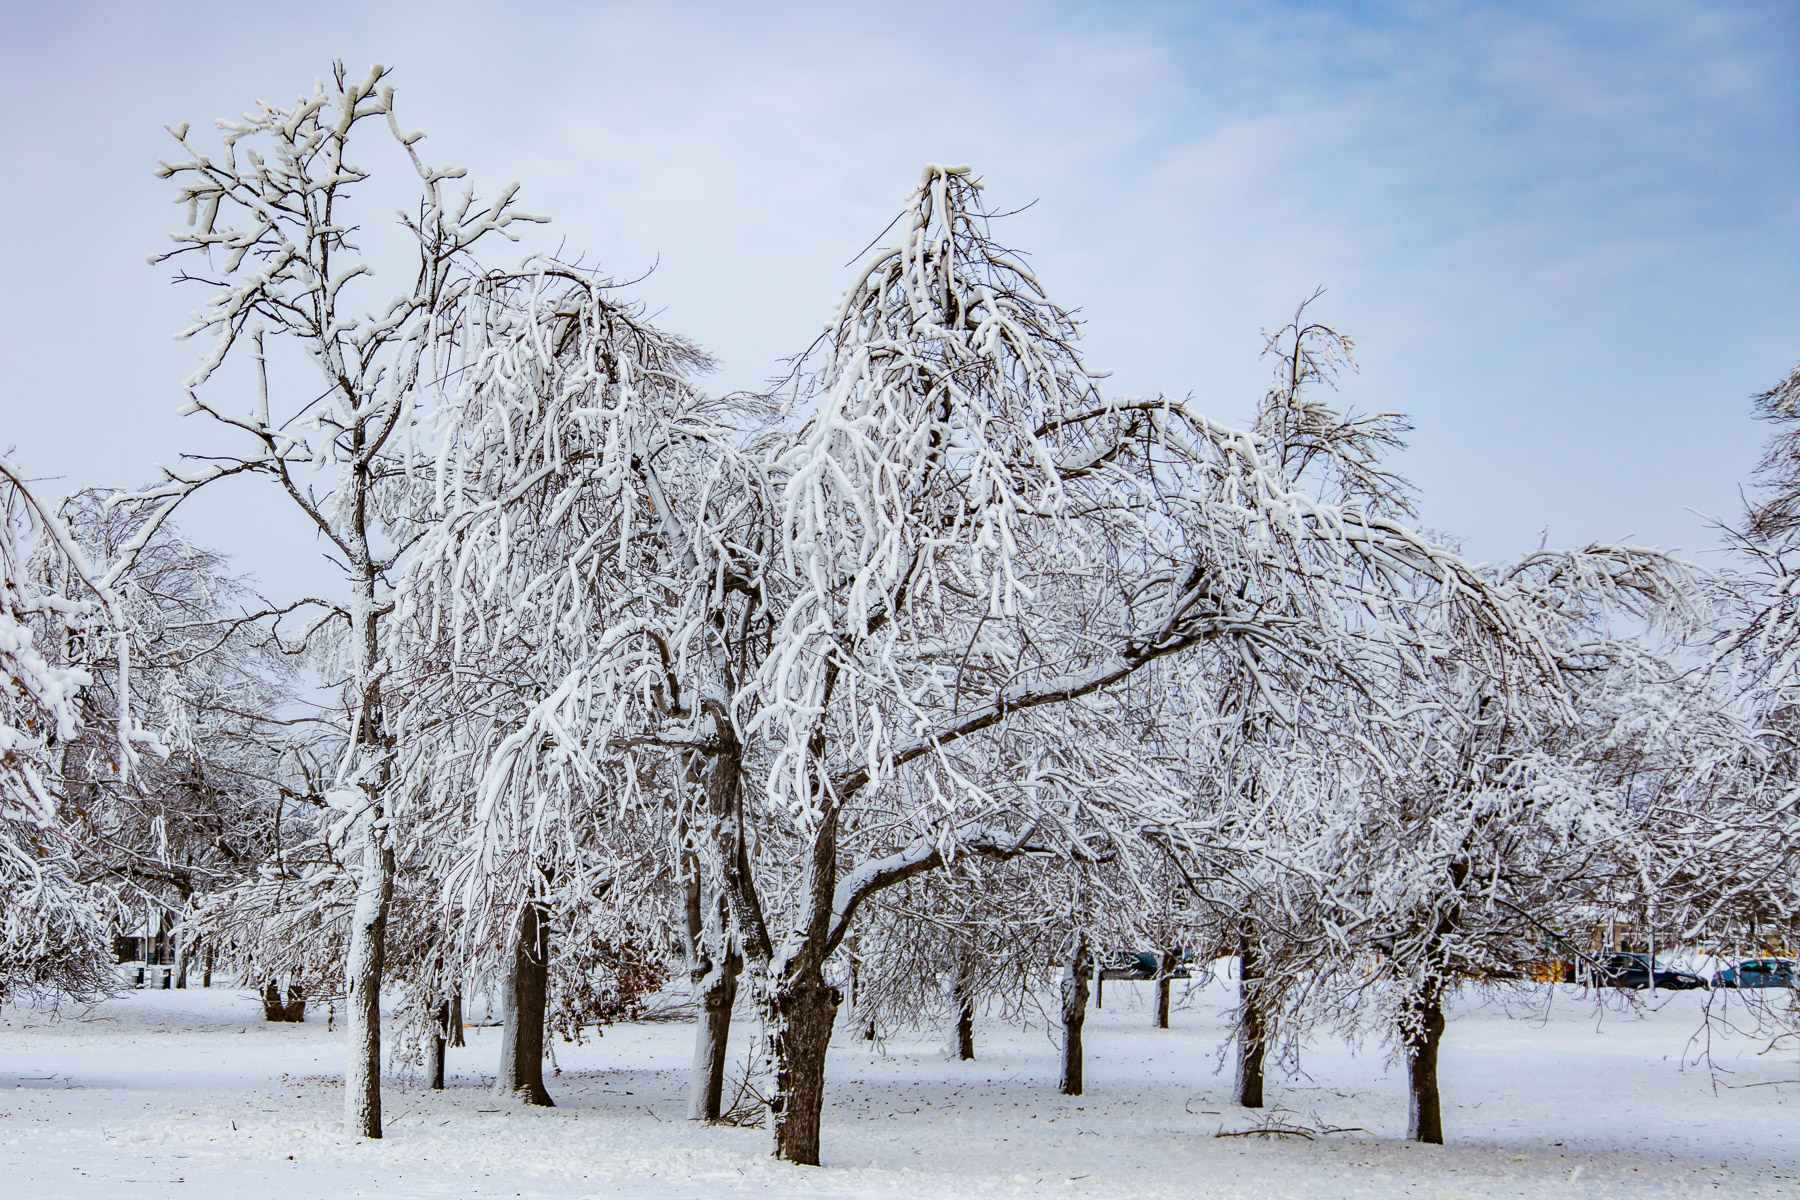 Ice covered trees - Niagara Falls NY - 1Z3A9223